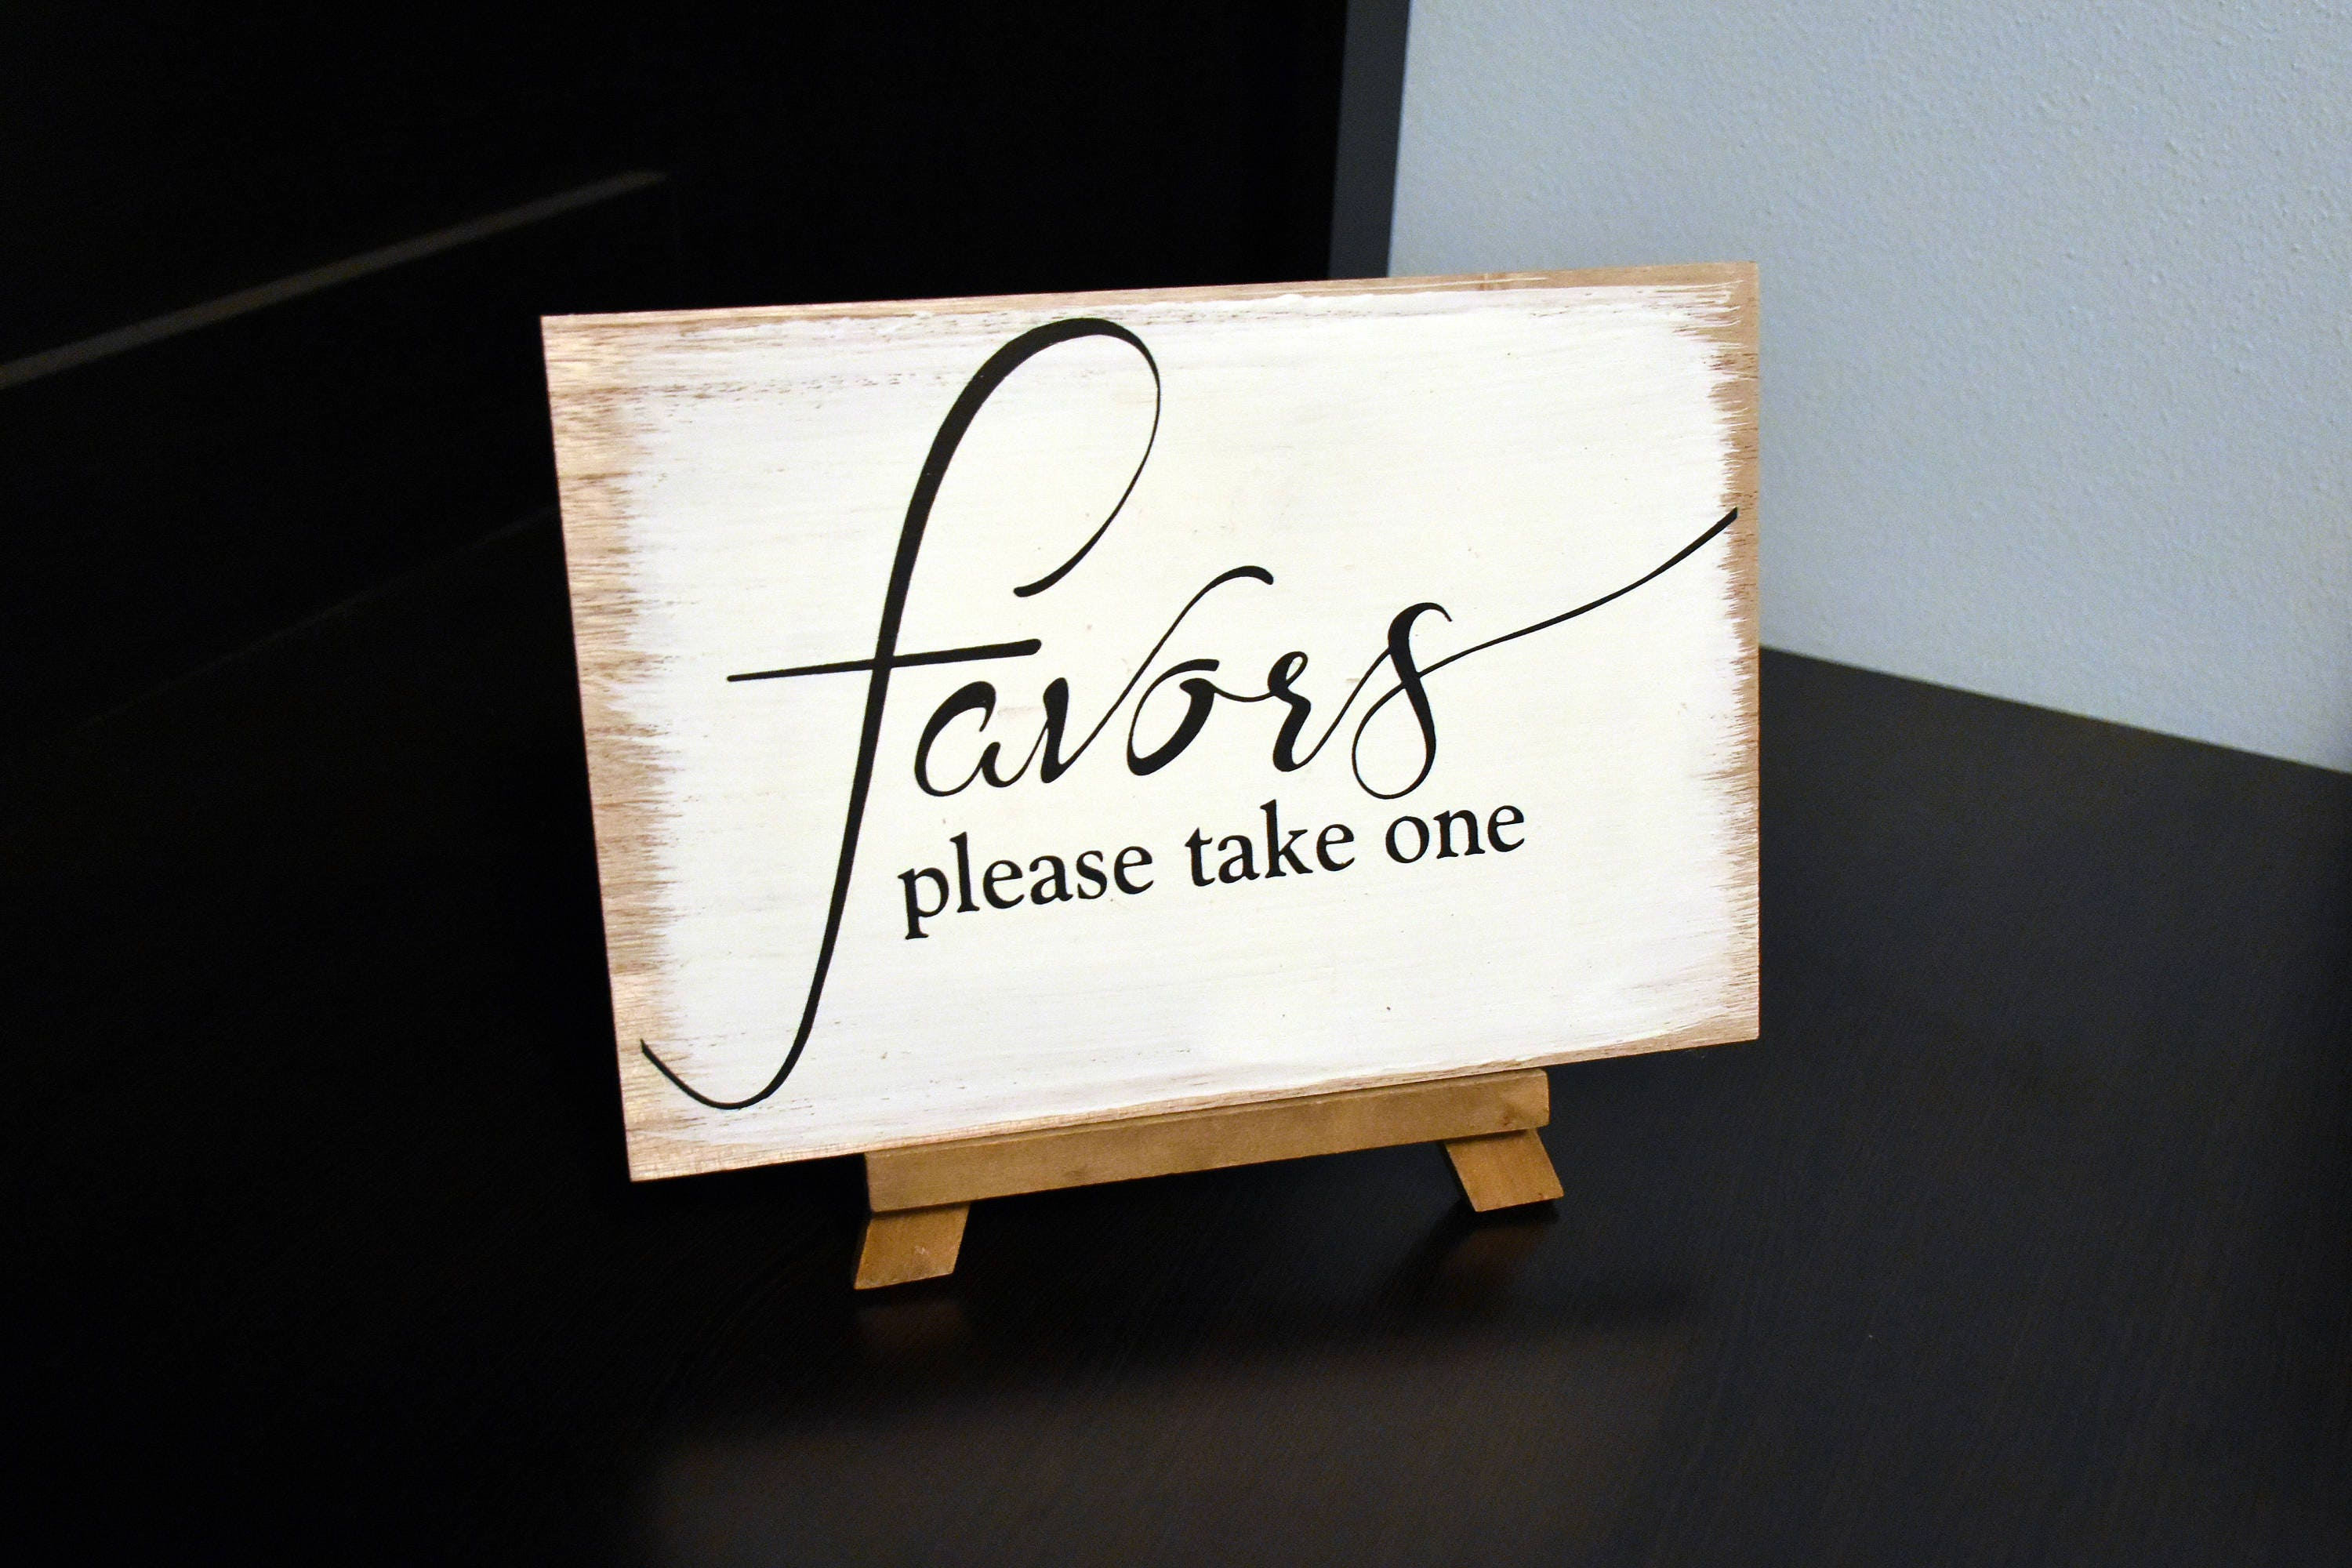 Wedding wood sign wooden sign favors please take one wedding sign wedding wood sign wooden sign favors please take one wedding sign wedding decorations rustic wedding decor junglespirit Image collections